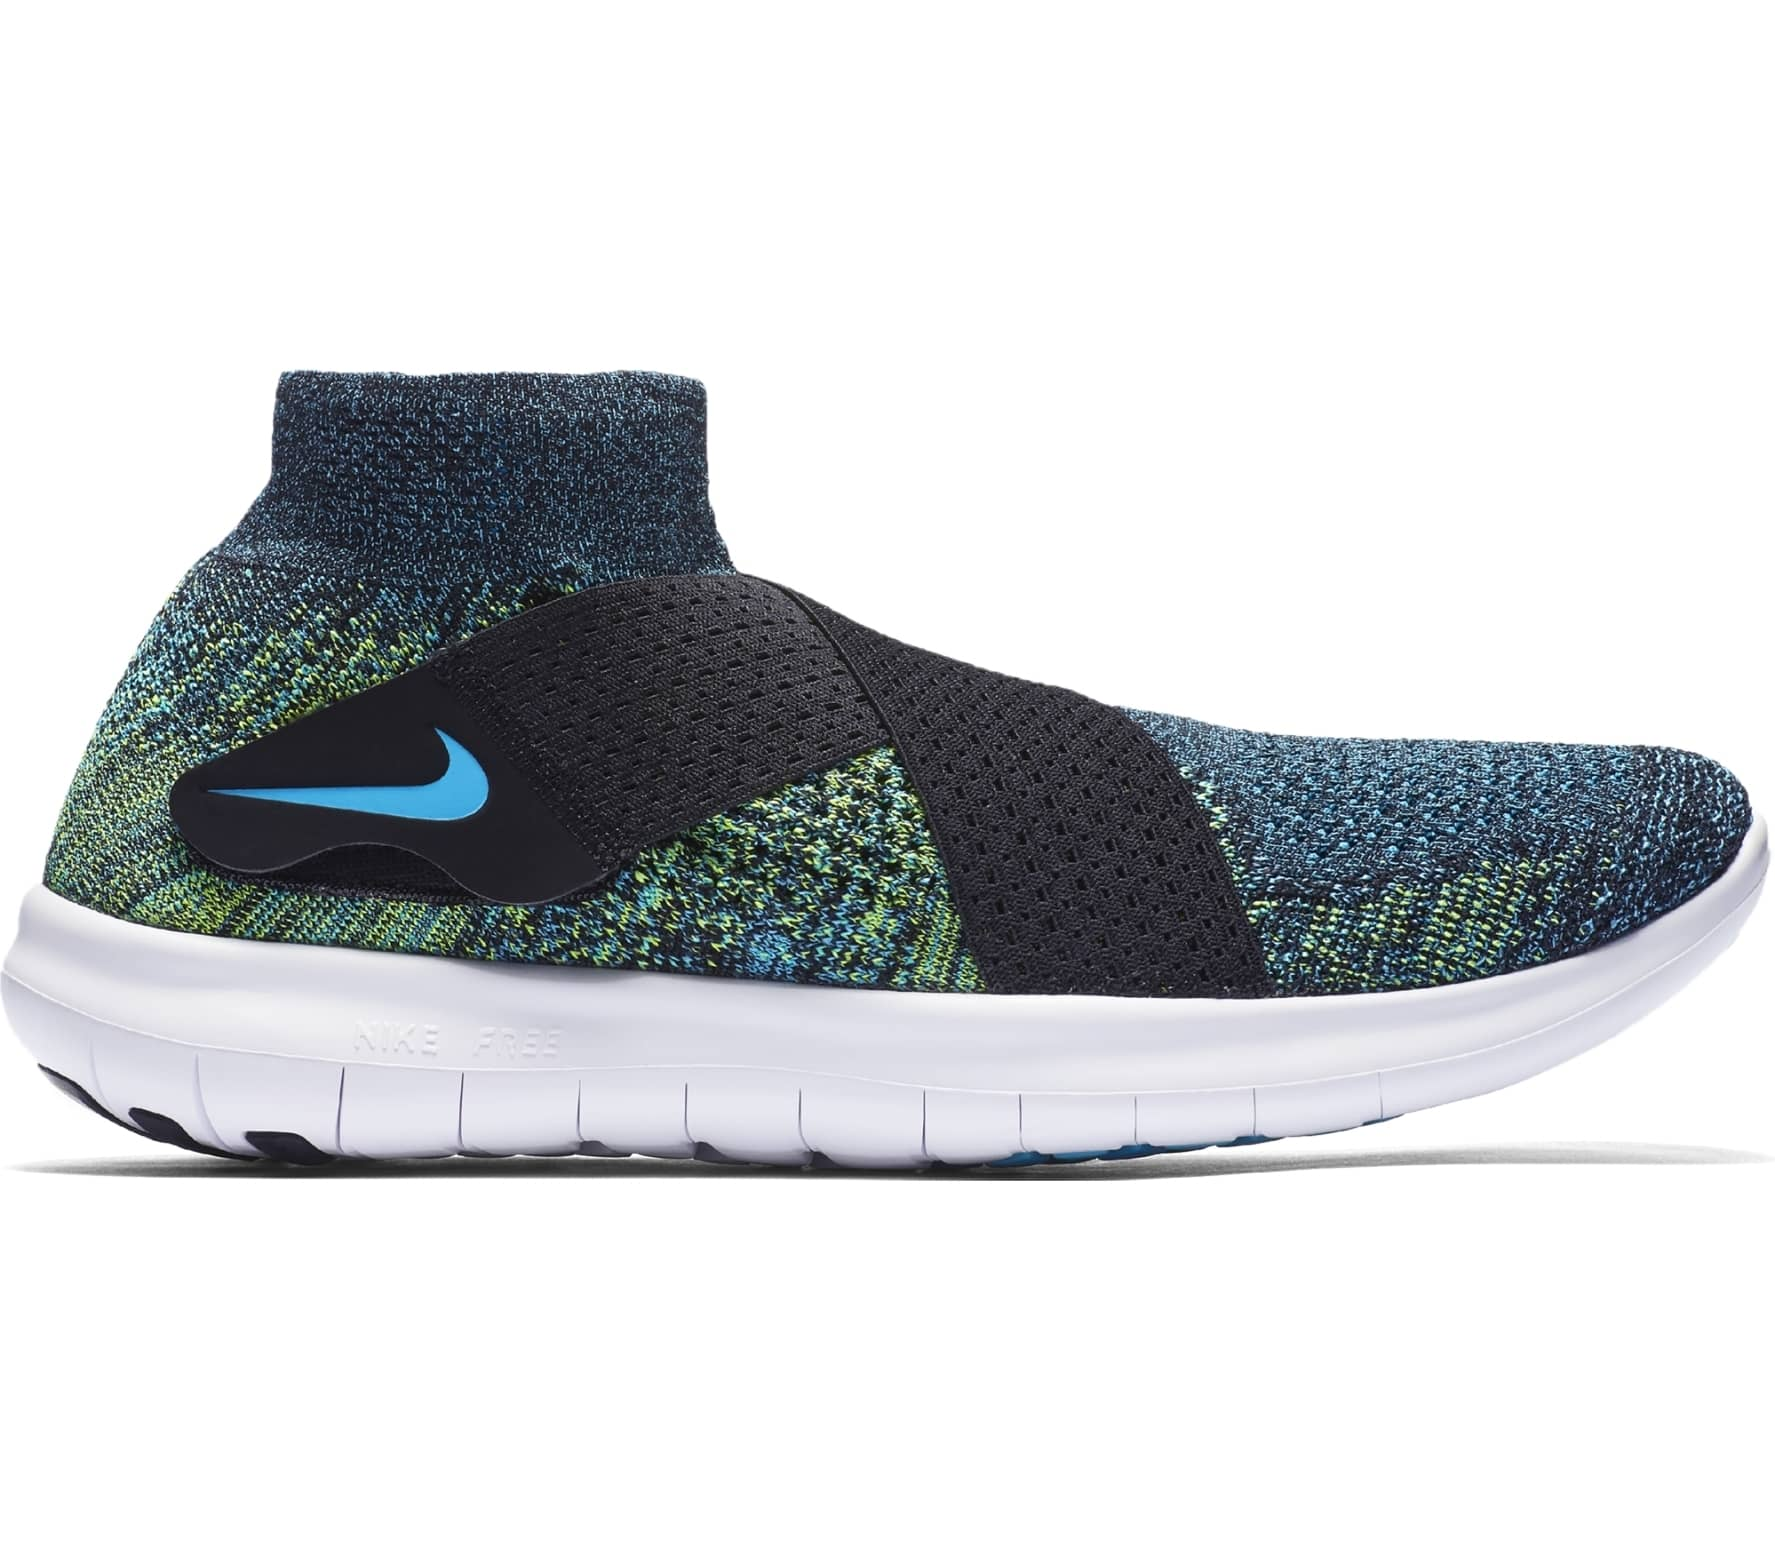 competitive price 8b908 c4c1b Nike - Free RN Motion Flyknit 2 men s running shoes (blue black)